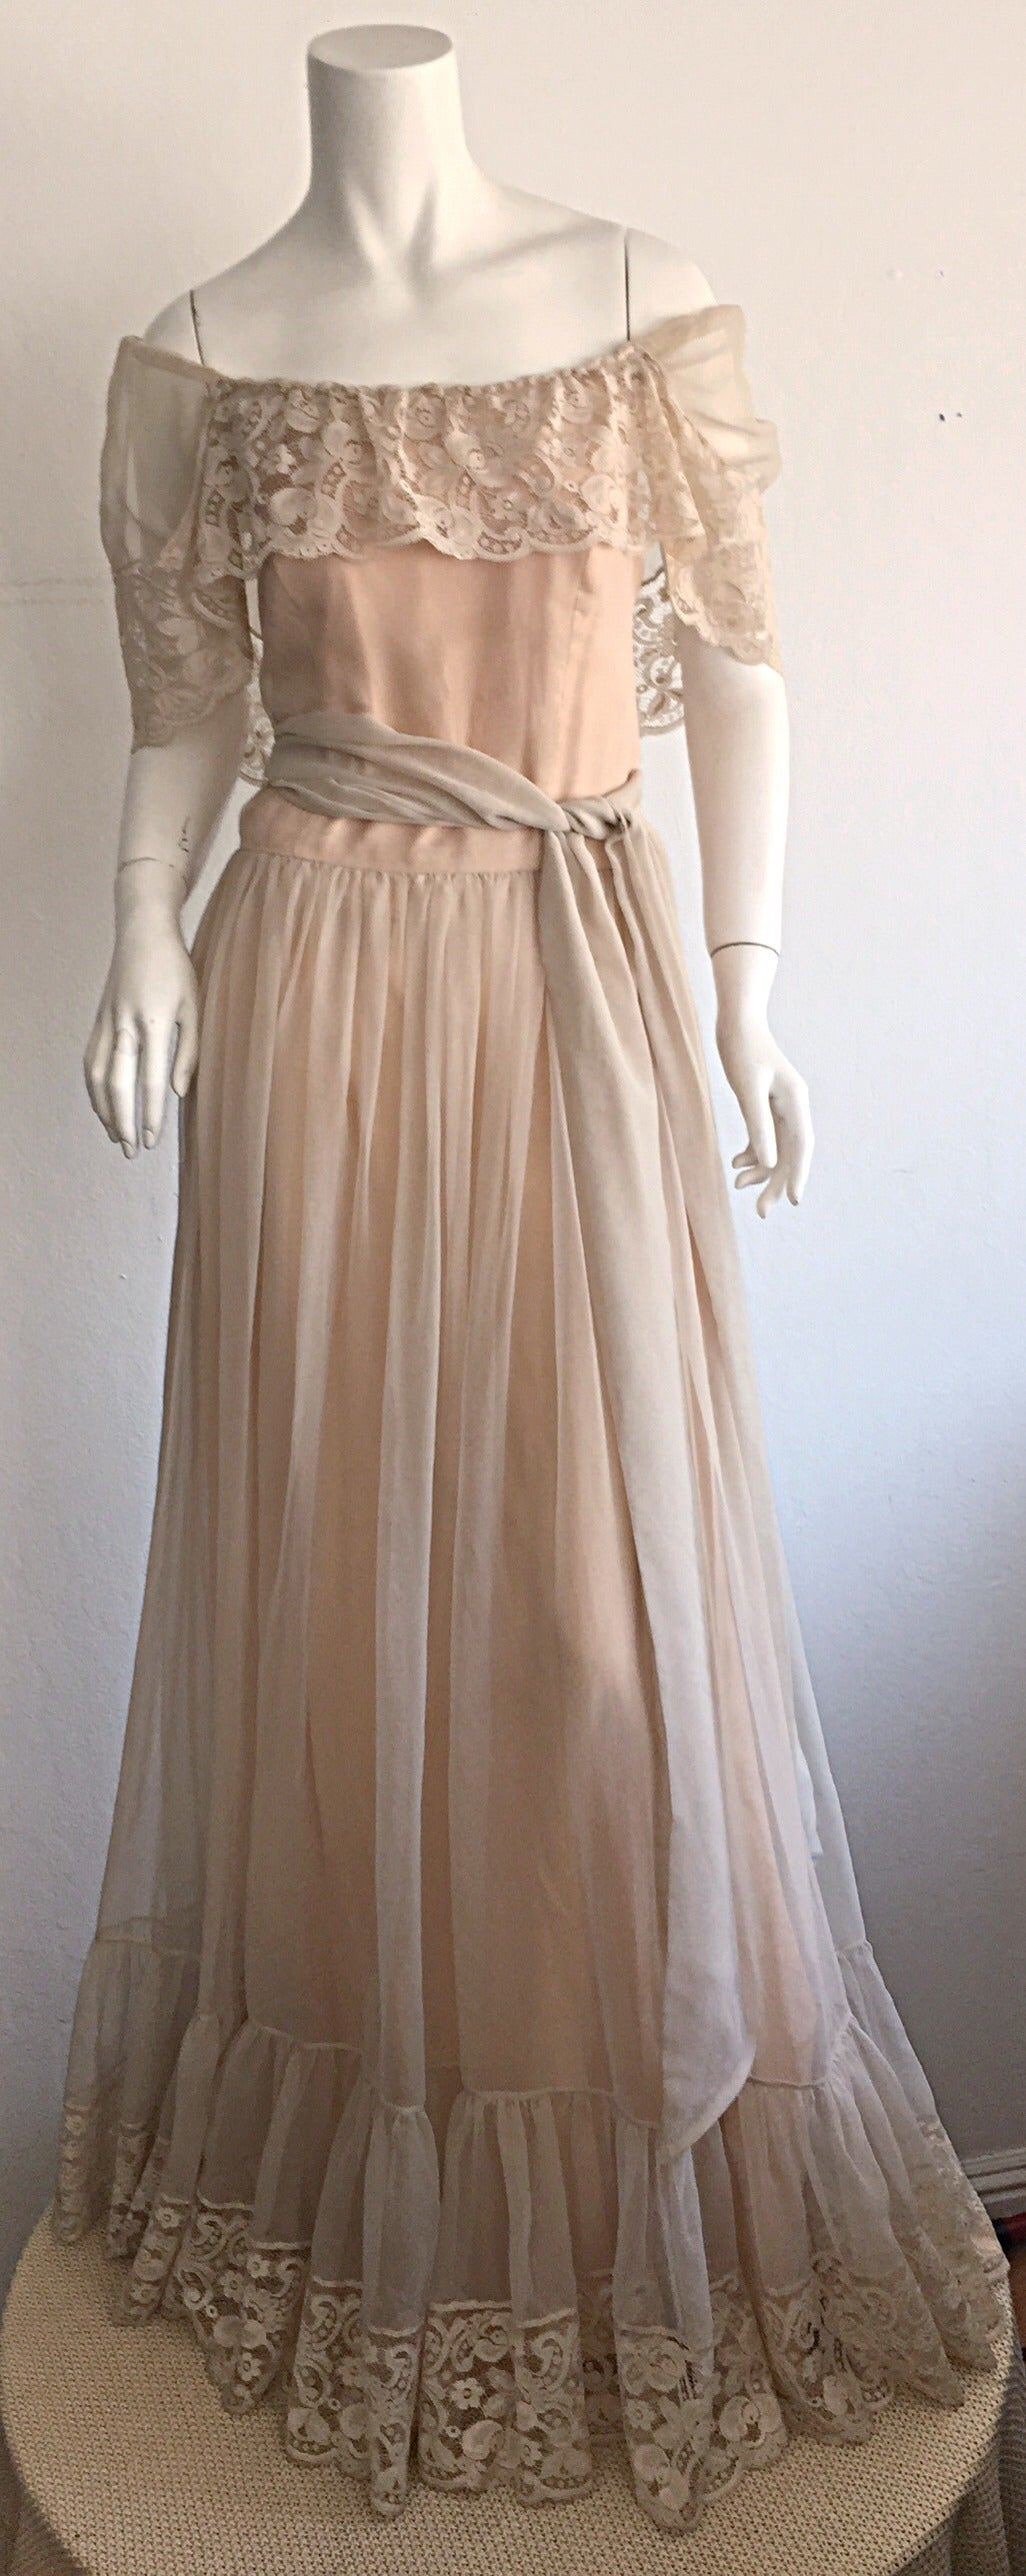 Beautiful Ethereal Vintage Victor Costa Cream Lace Bohemian Wedding Dress / Gown For Sale 2